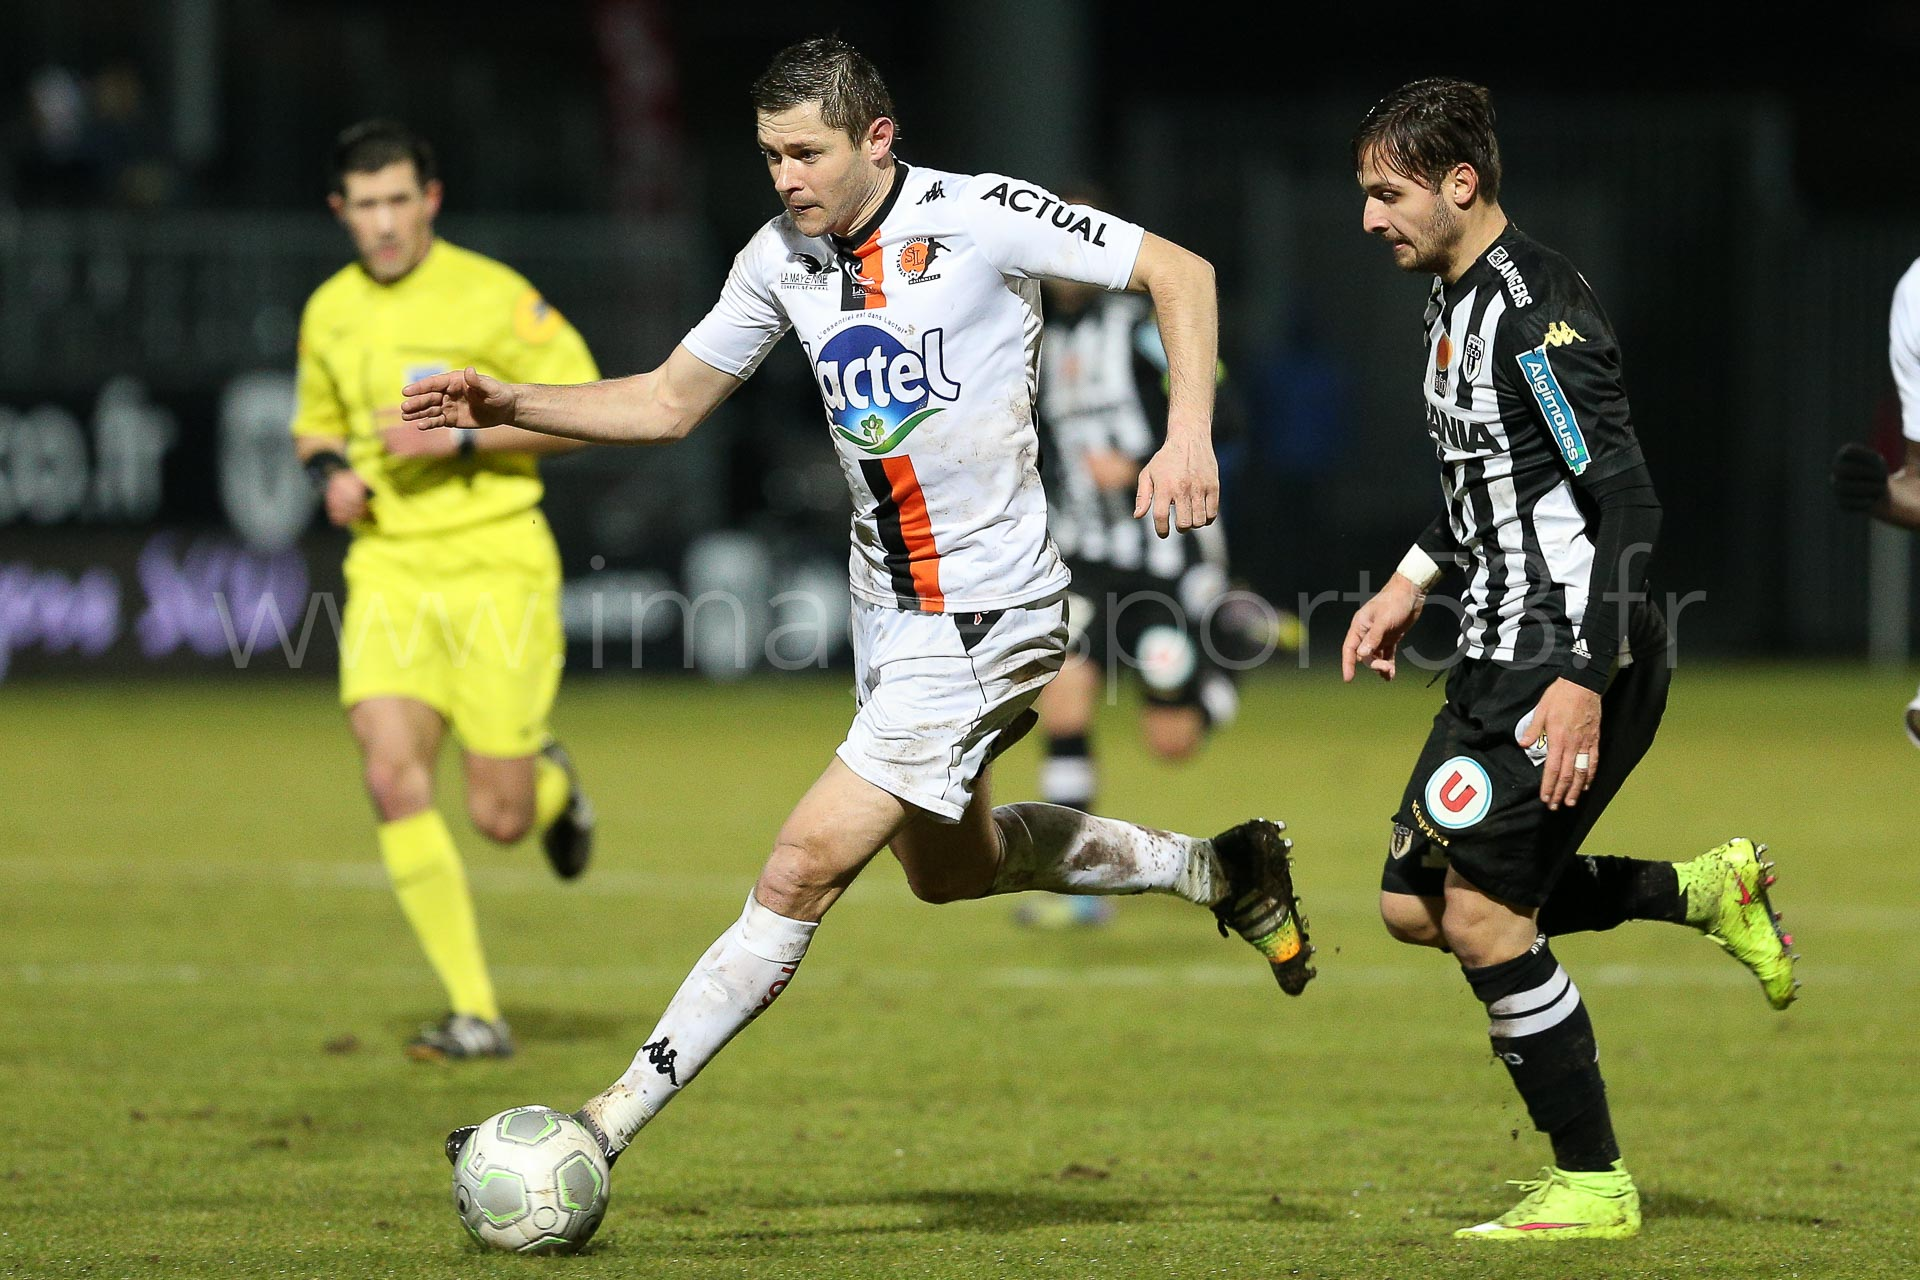 NG-Ligue2-1415-J25-Angers-Laval_27